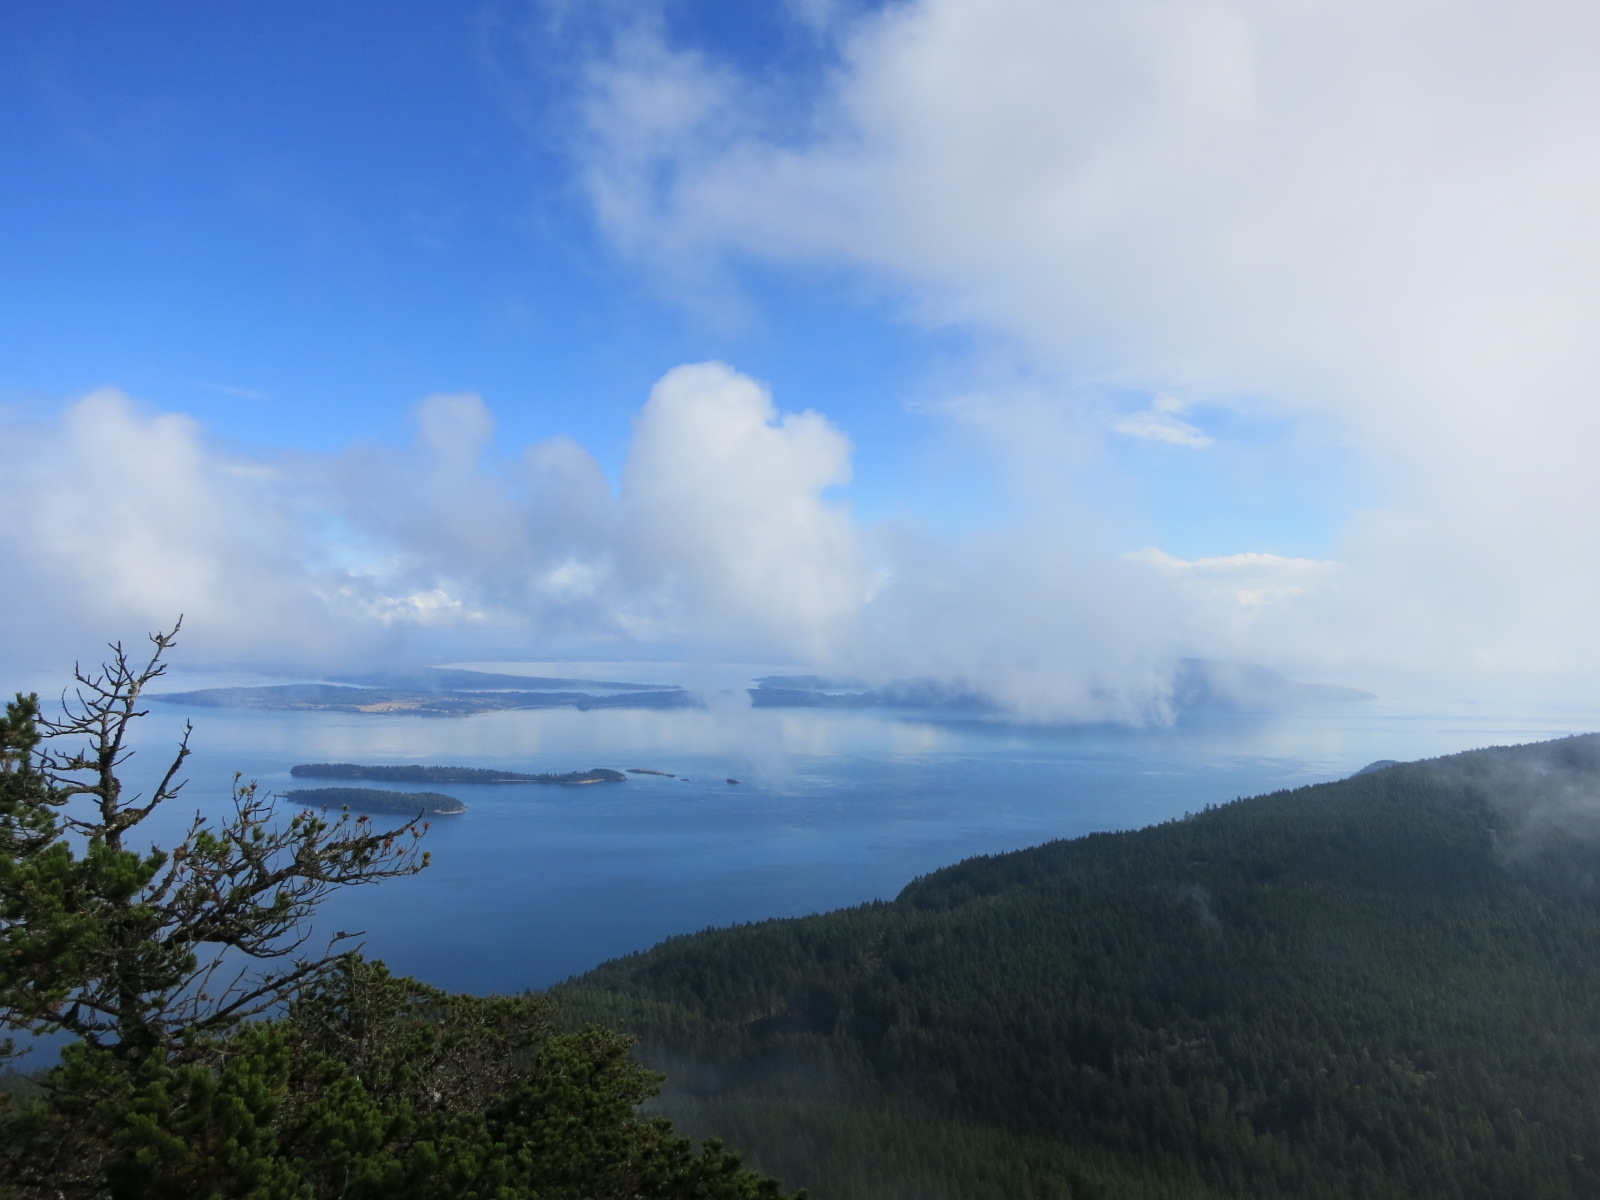 The view from Mt. Constitution